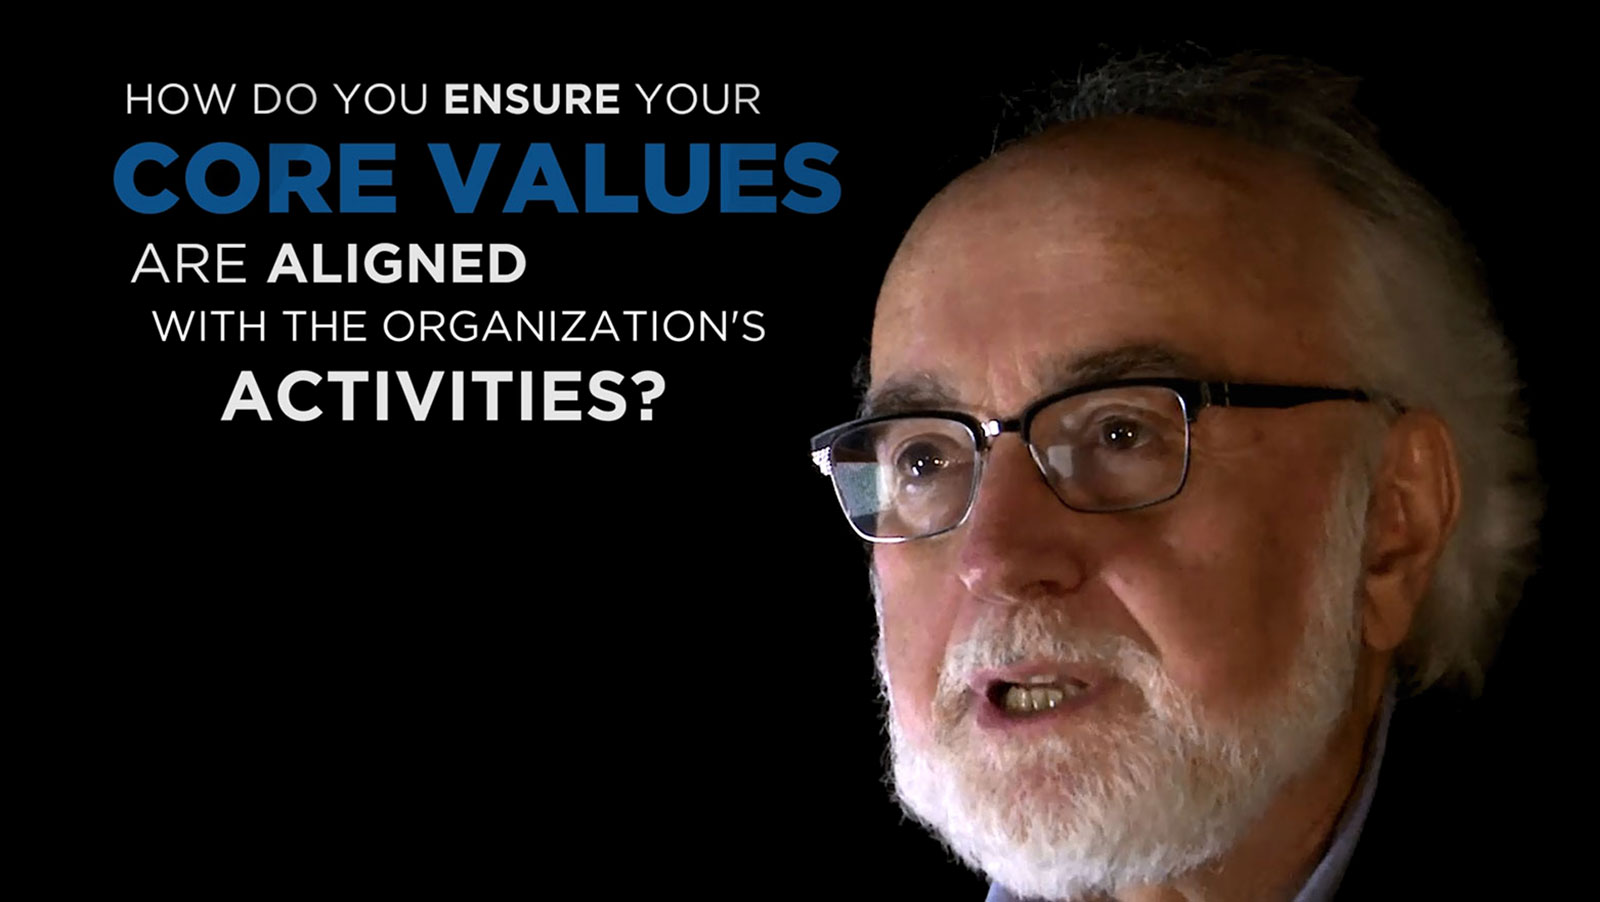 Shared Experience - How do you ensure your core values are aligned with the organization's activities?